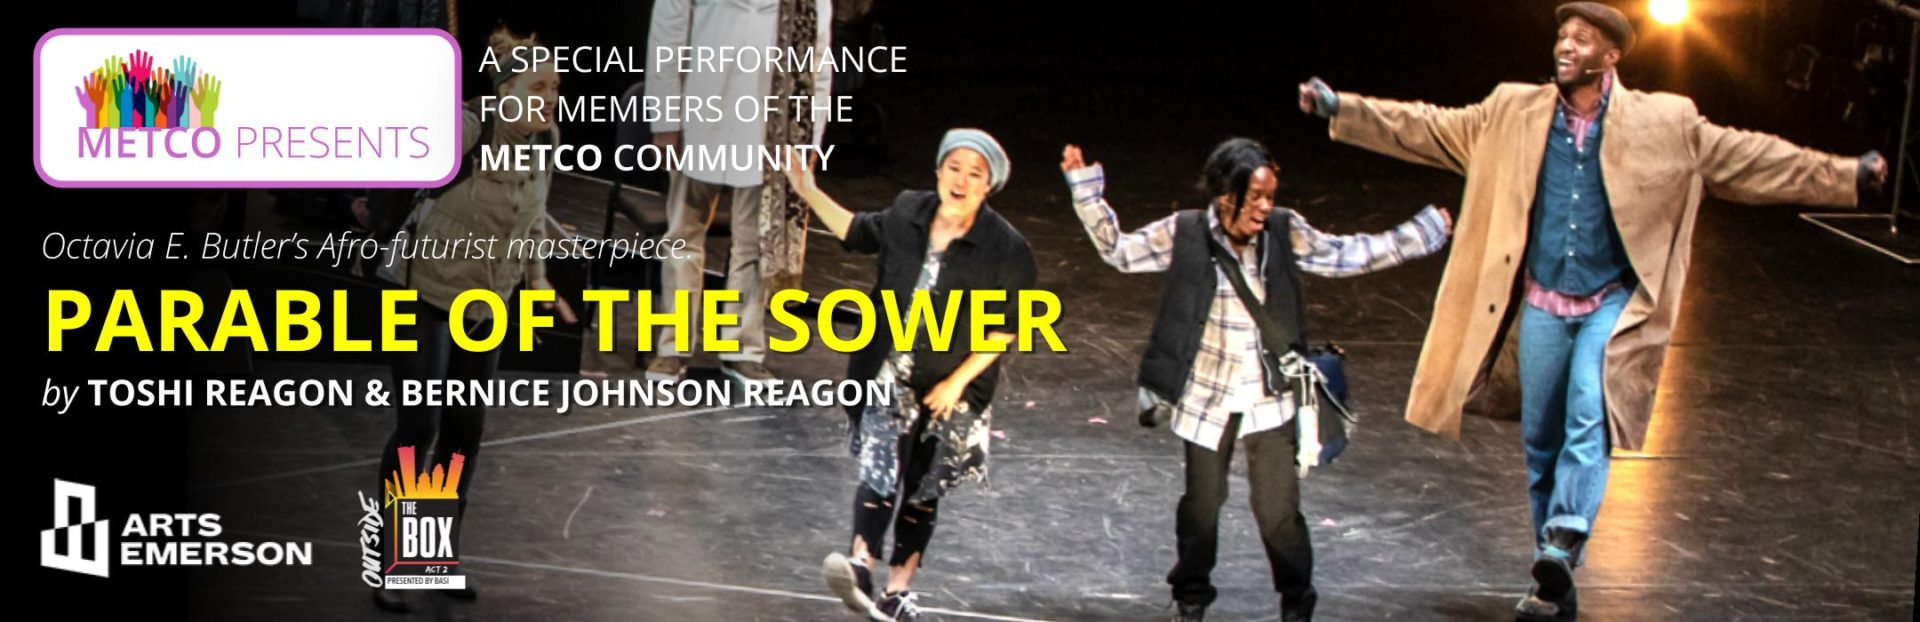 PARABLE OF THE SOWER email banner - EDITABLE